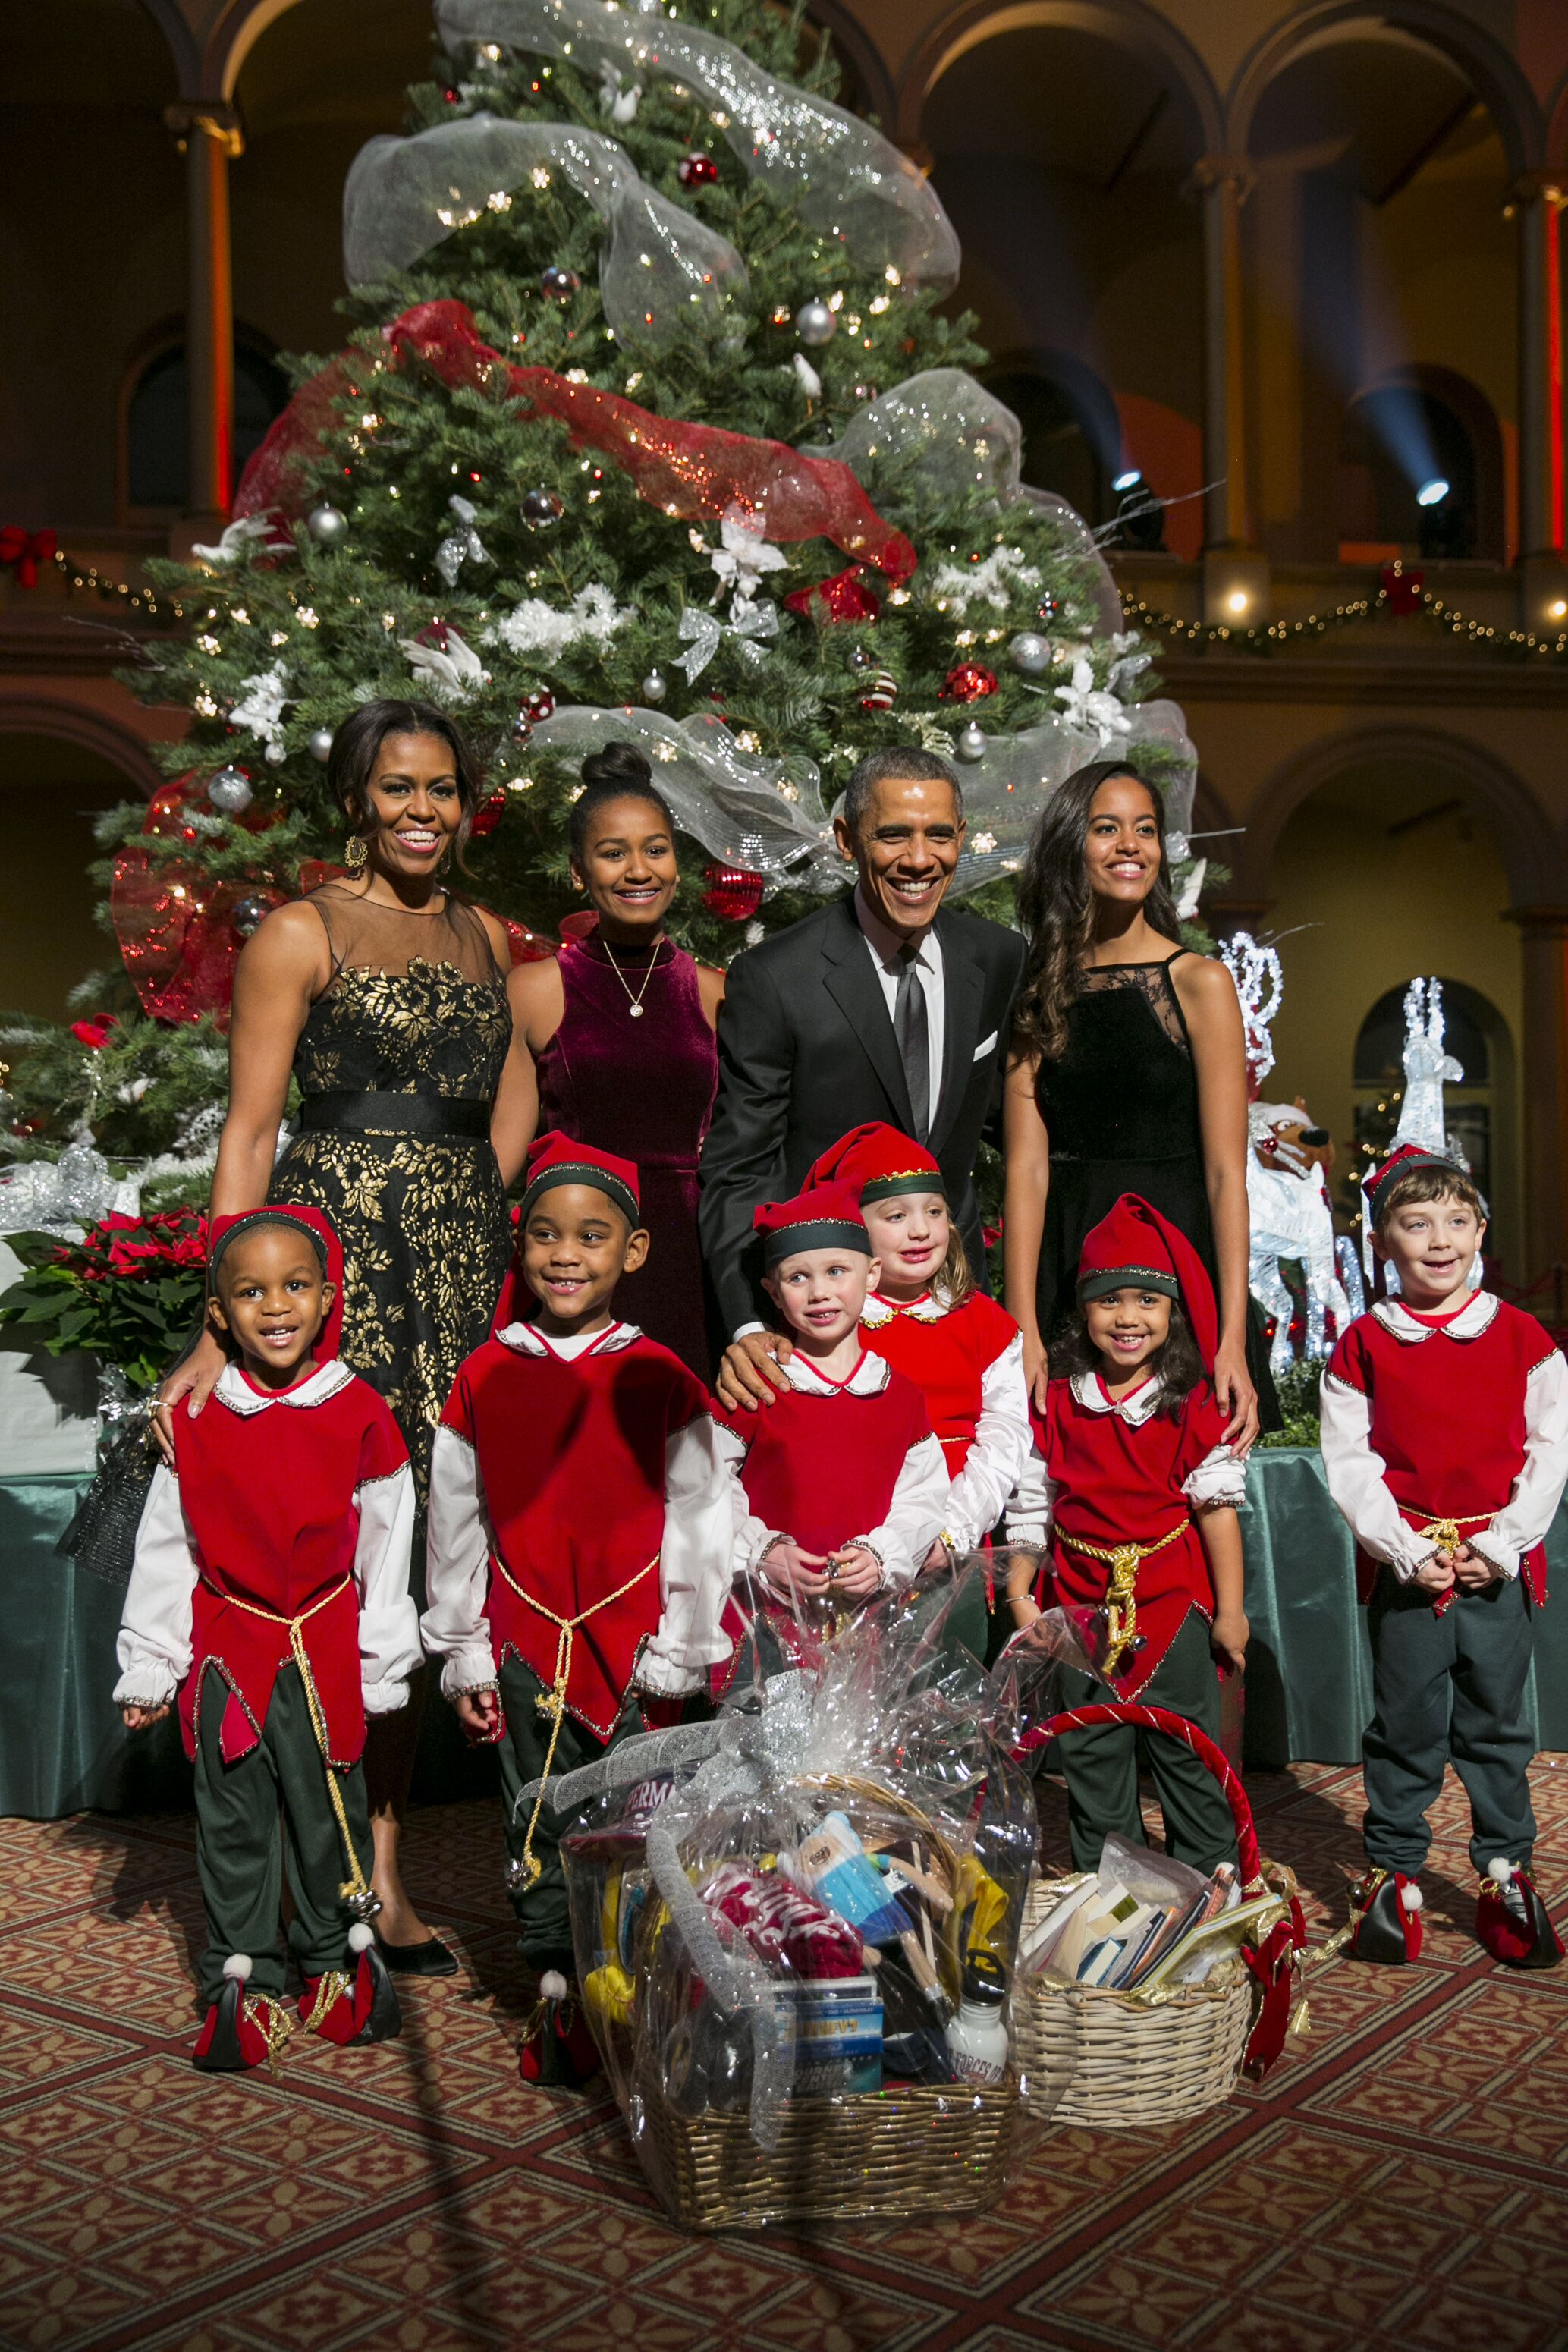 The Obama family participates in the TNT Christmas special in Washington DC in 2014/ Source: Getty Images